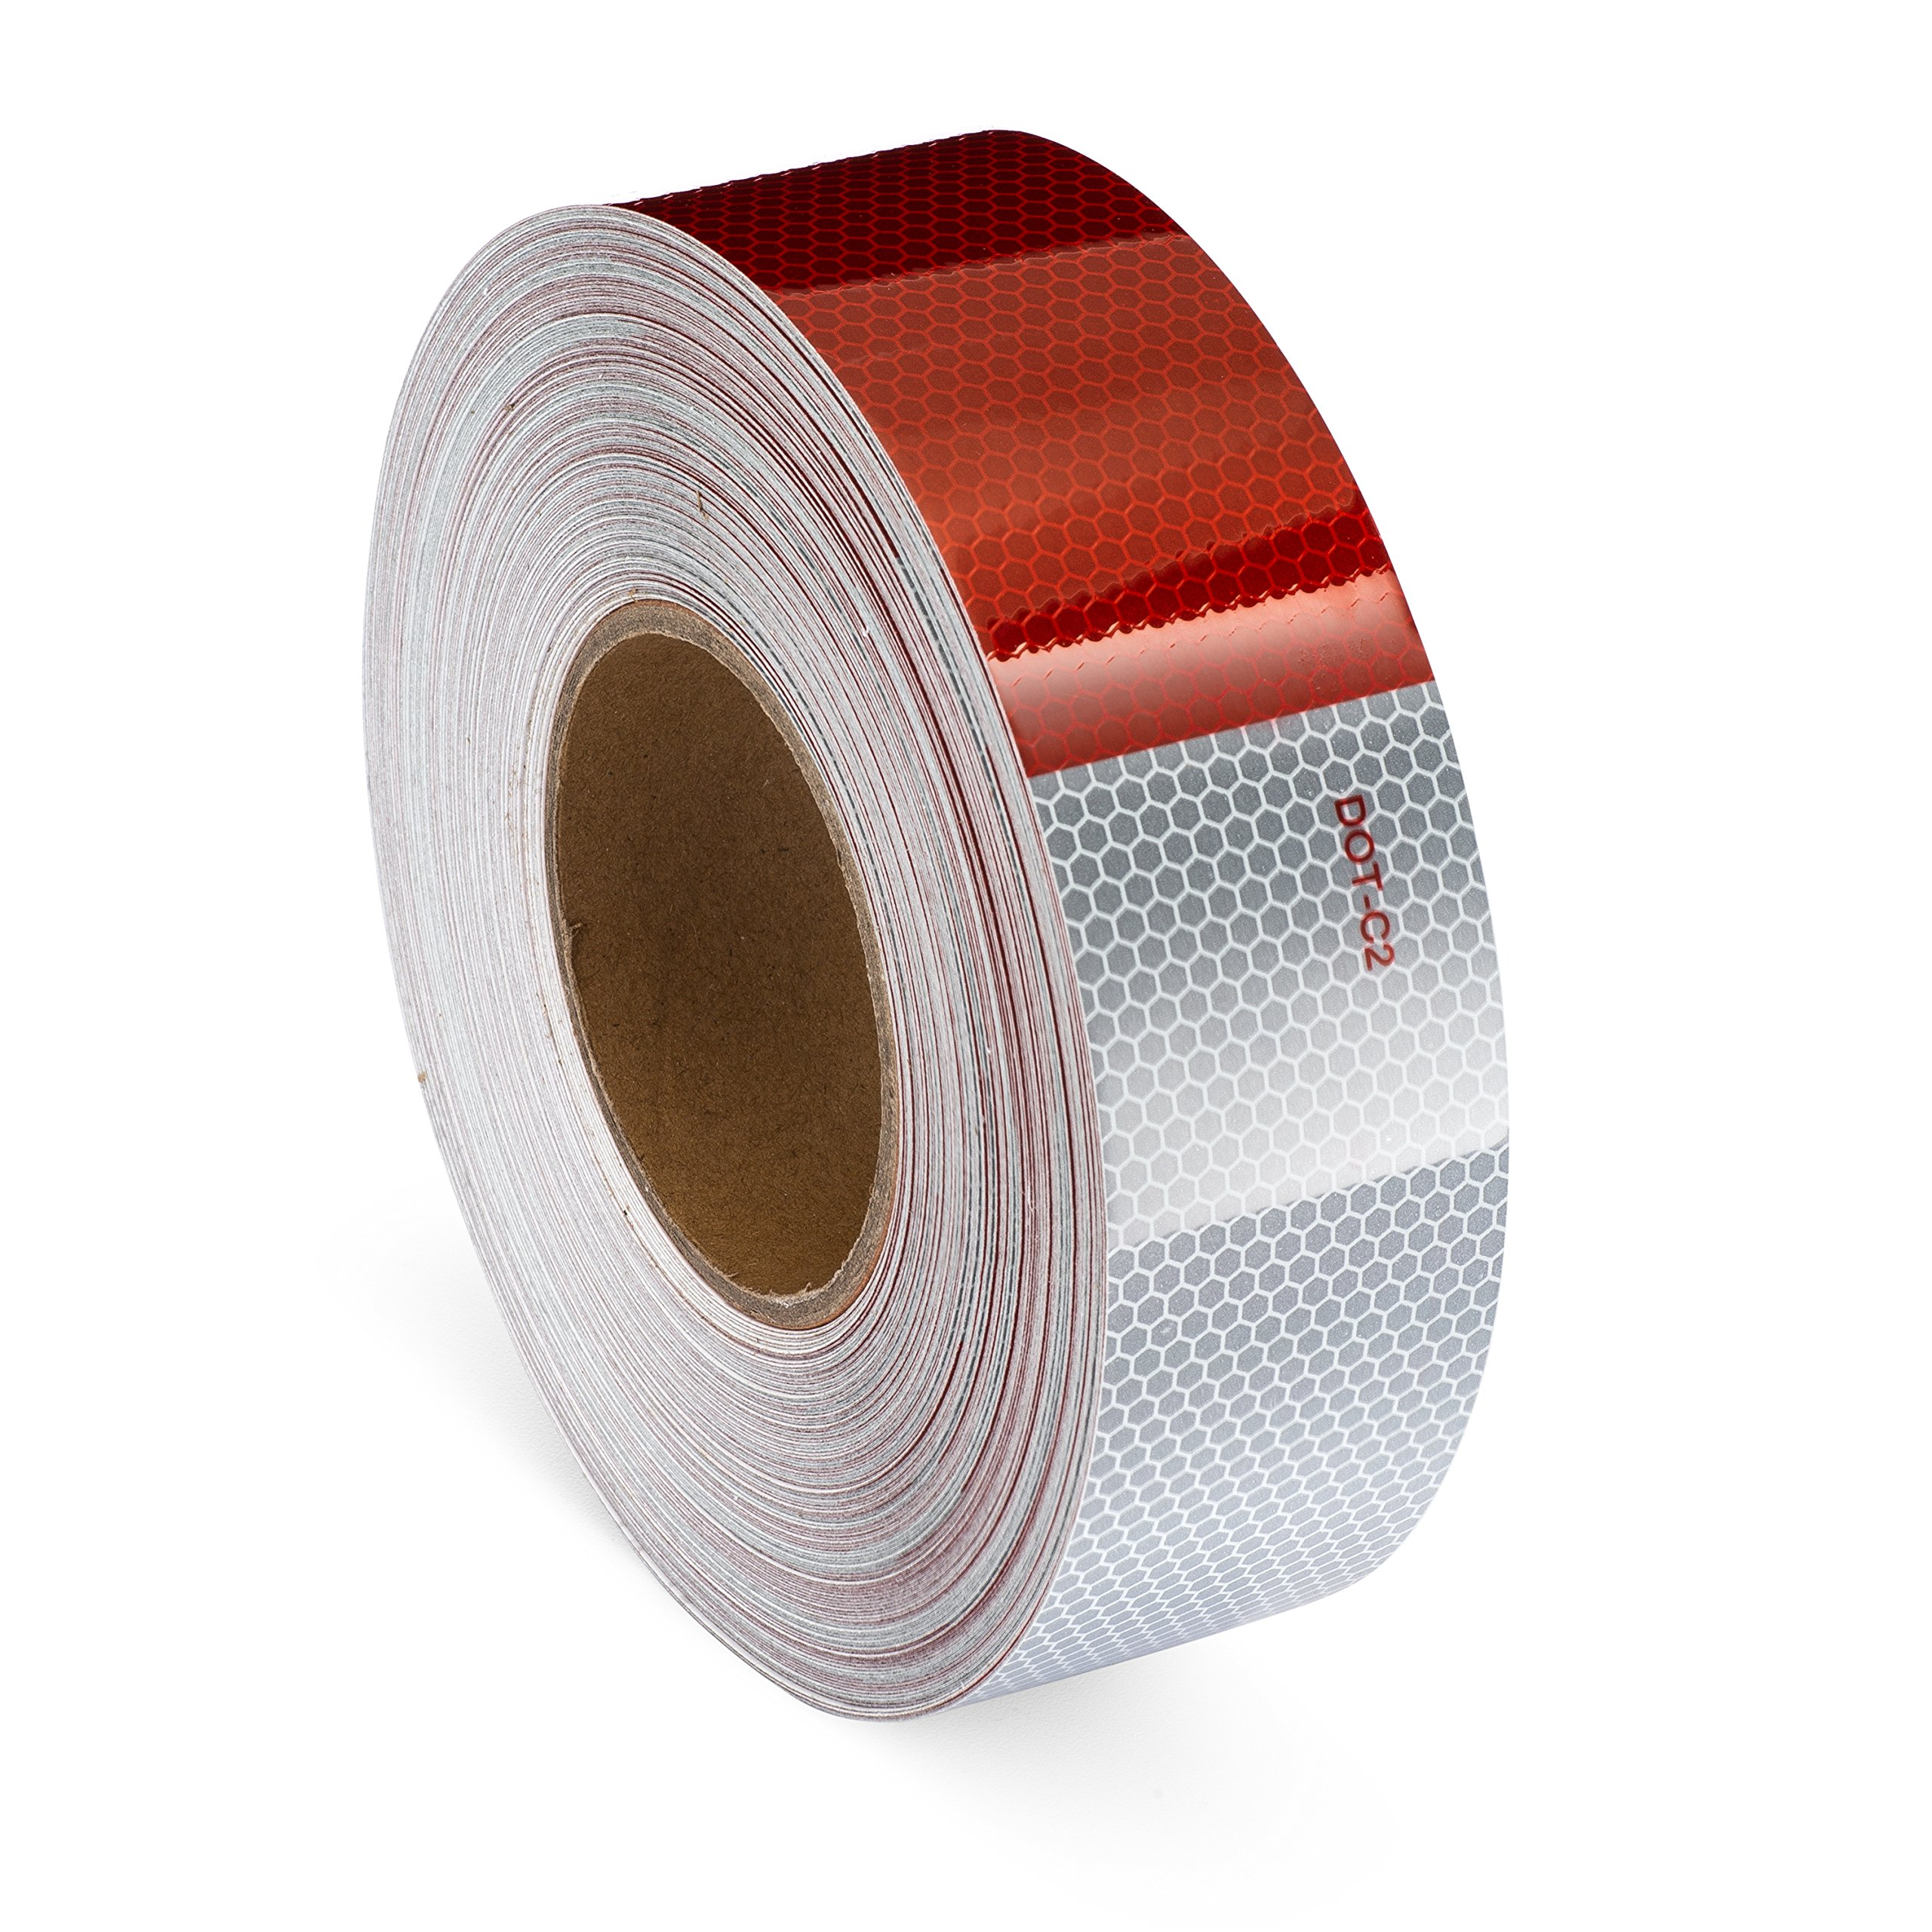 2''x150' DOT-C2 Reflective Tape, conspicuity tape, DOT tape